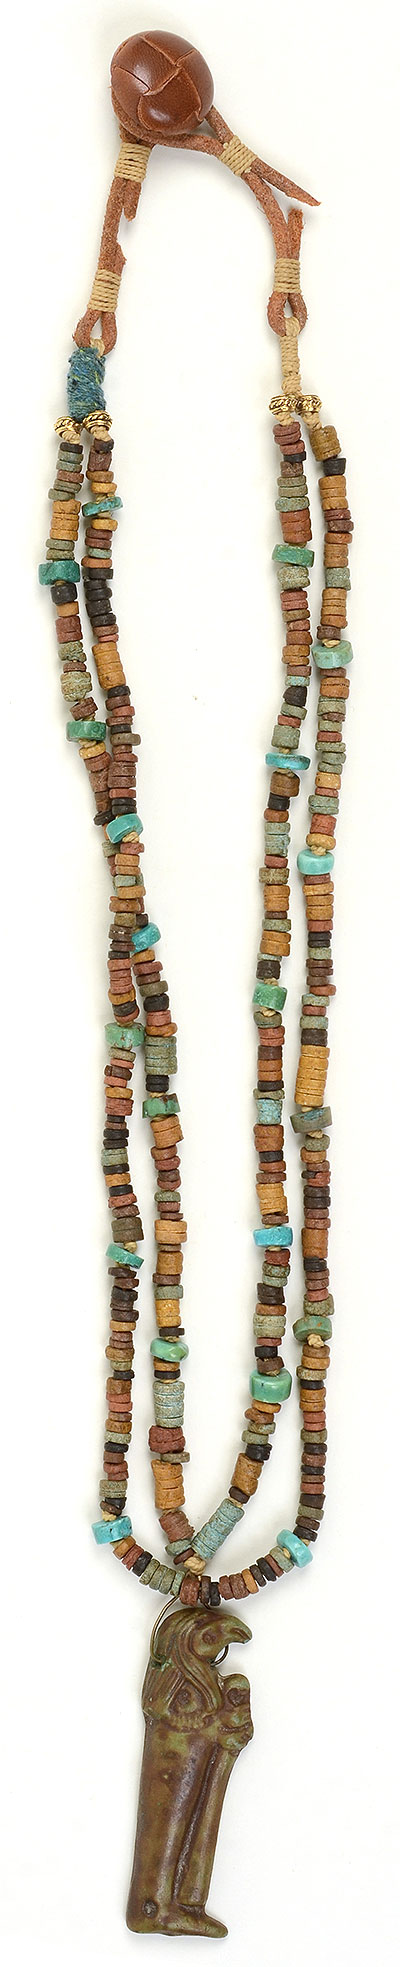 """Talisman for Longevity"" bead necklace by Kathleen O'Brien"